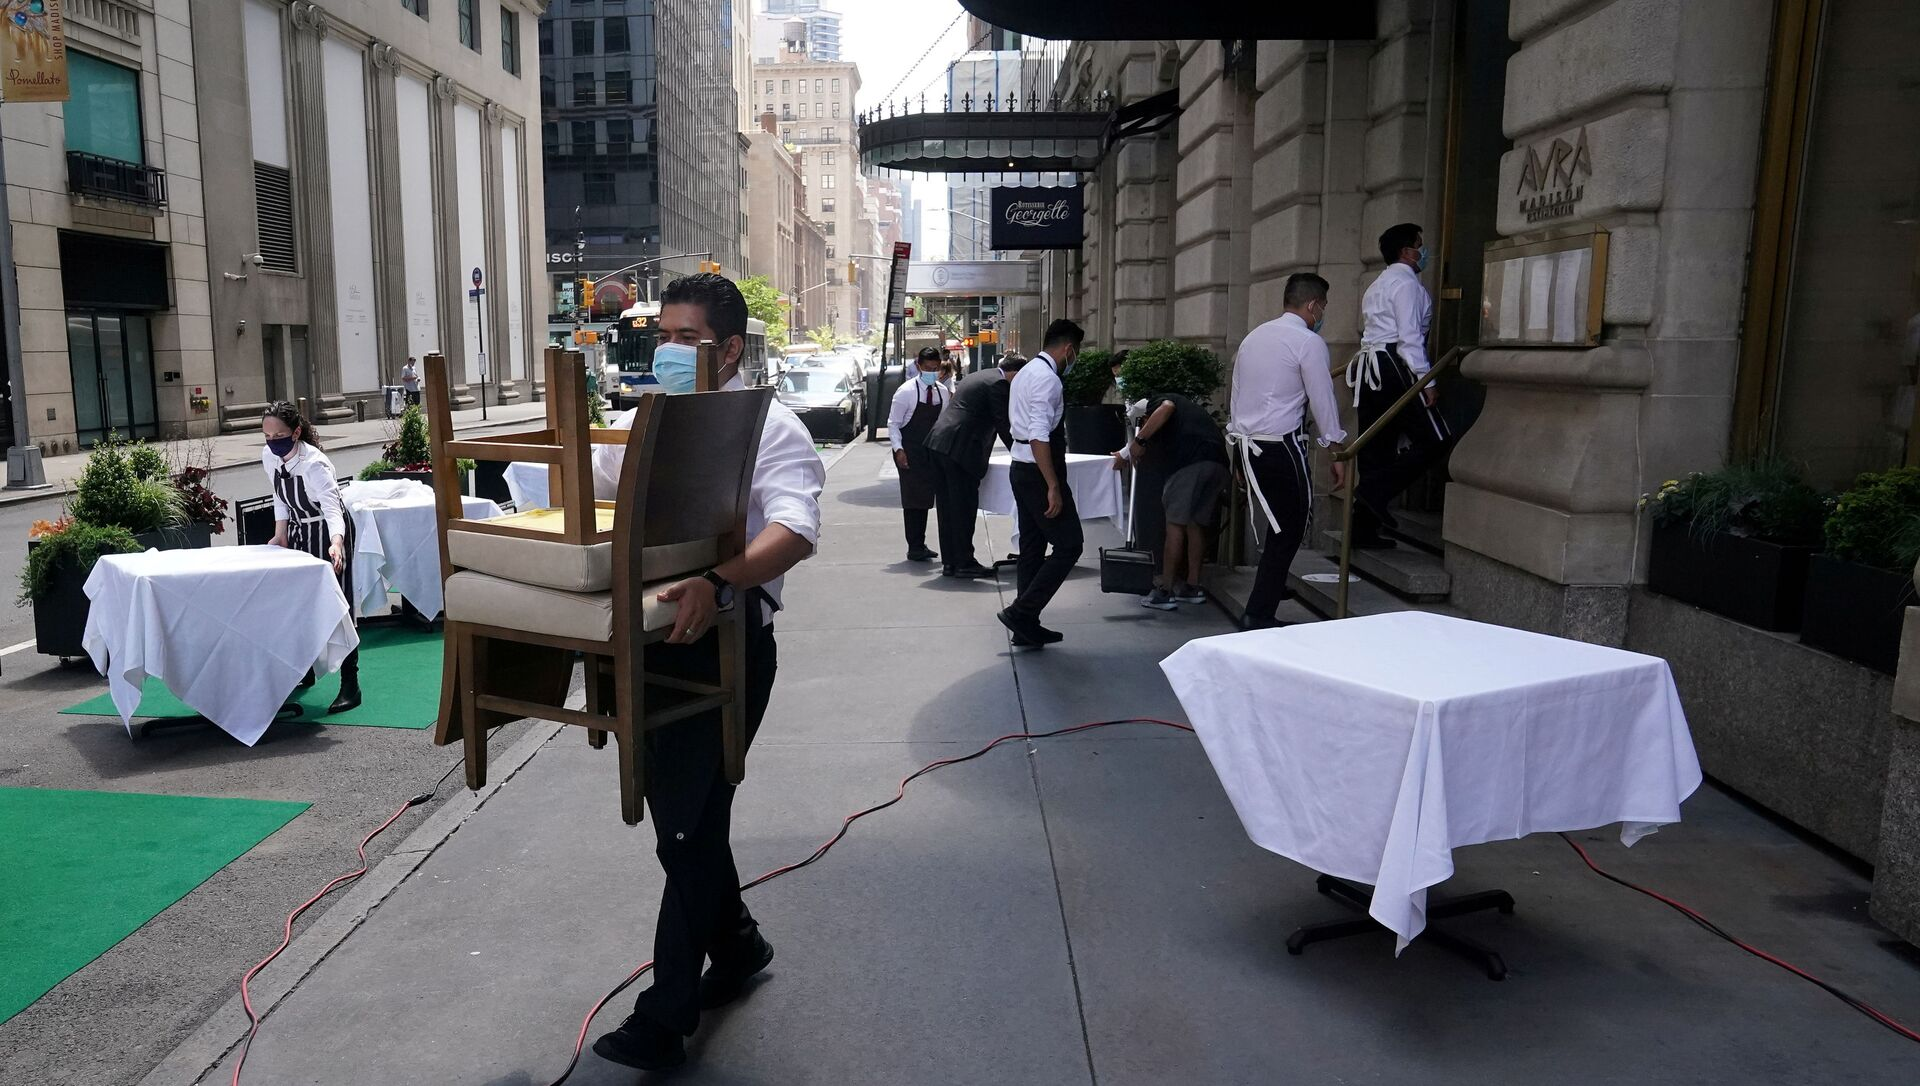 FILE PHOTO: A waiter sets up tables in front of a restaurant on a street on the first day of the phase two re-opening of businesses following the outbreak of the coronavirus disease (COVID-19), in the Manhattan borough of New York City, New York, U.S., June 22, 2020.  - Sputnik International, 1920, 02.08.2021